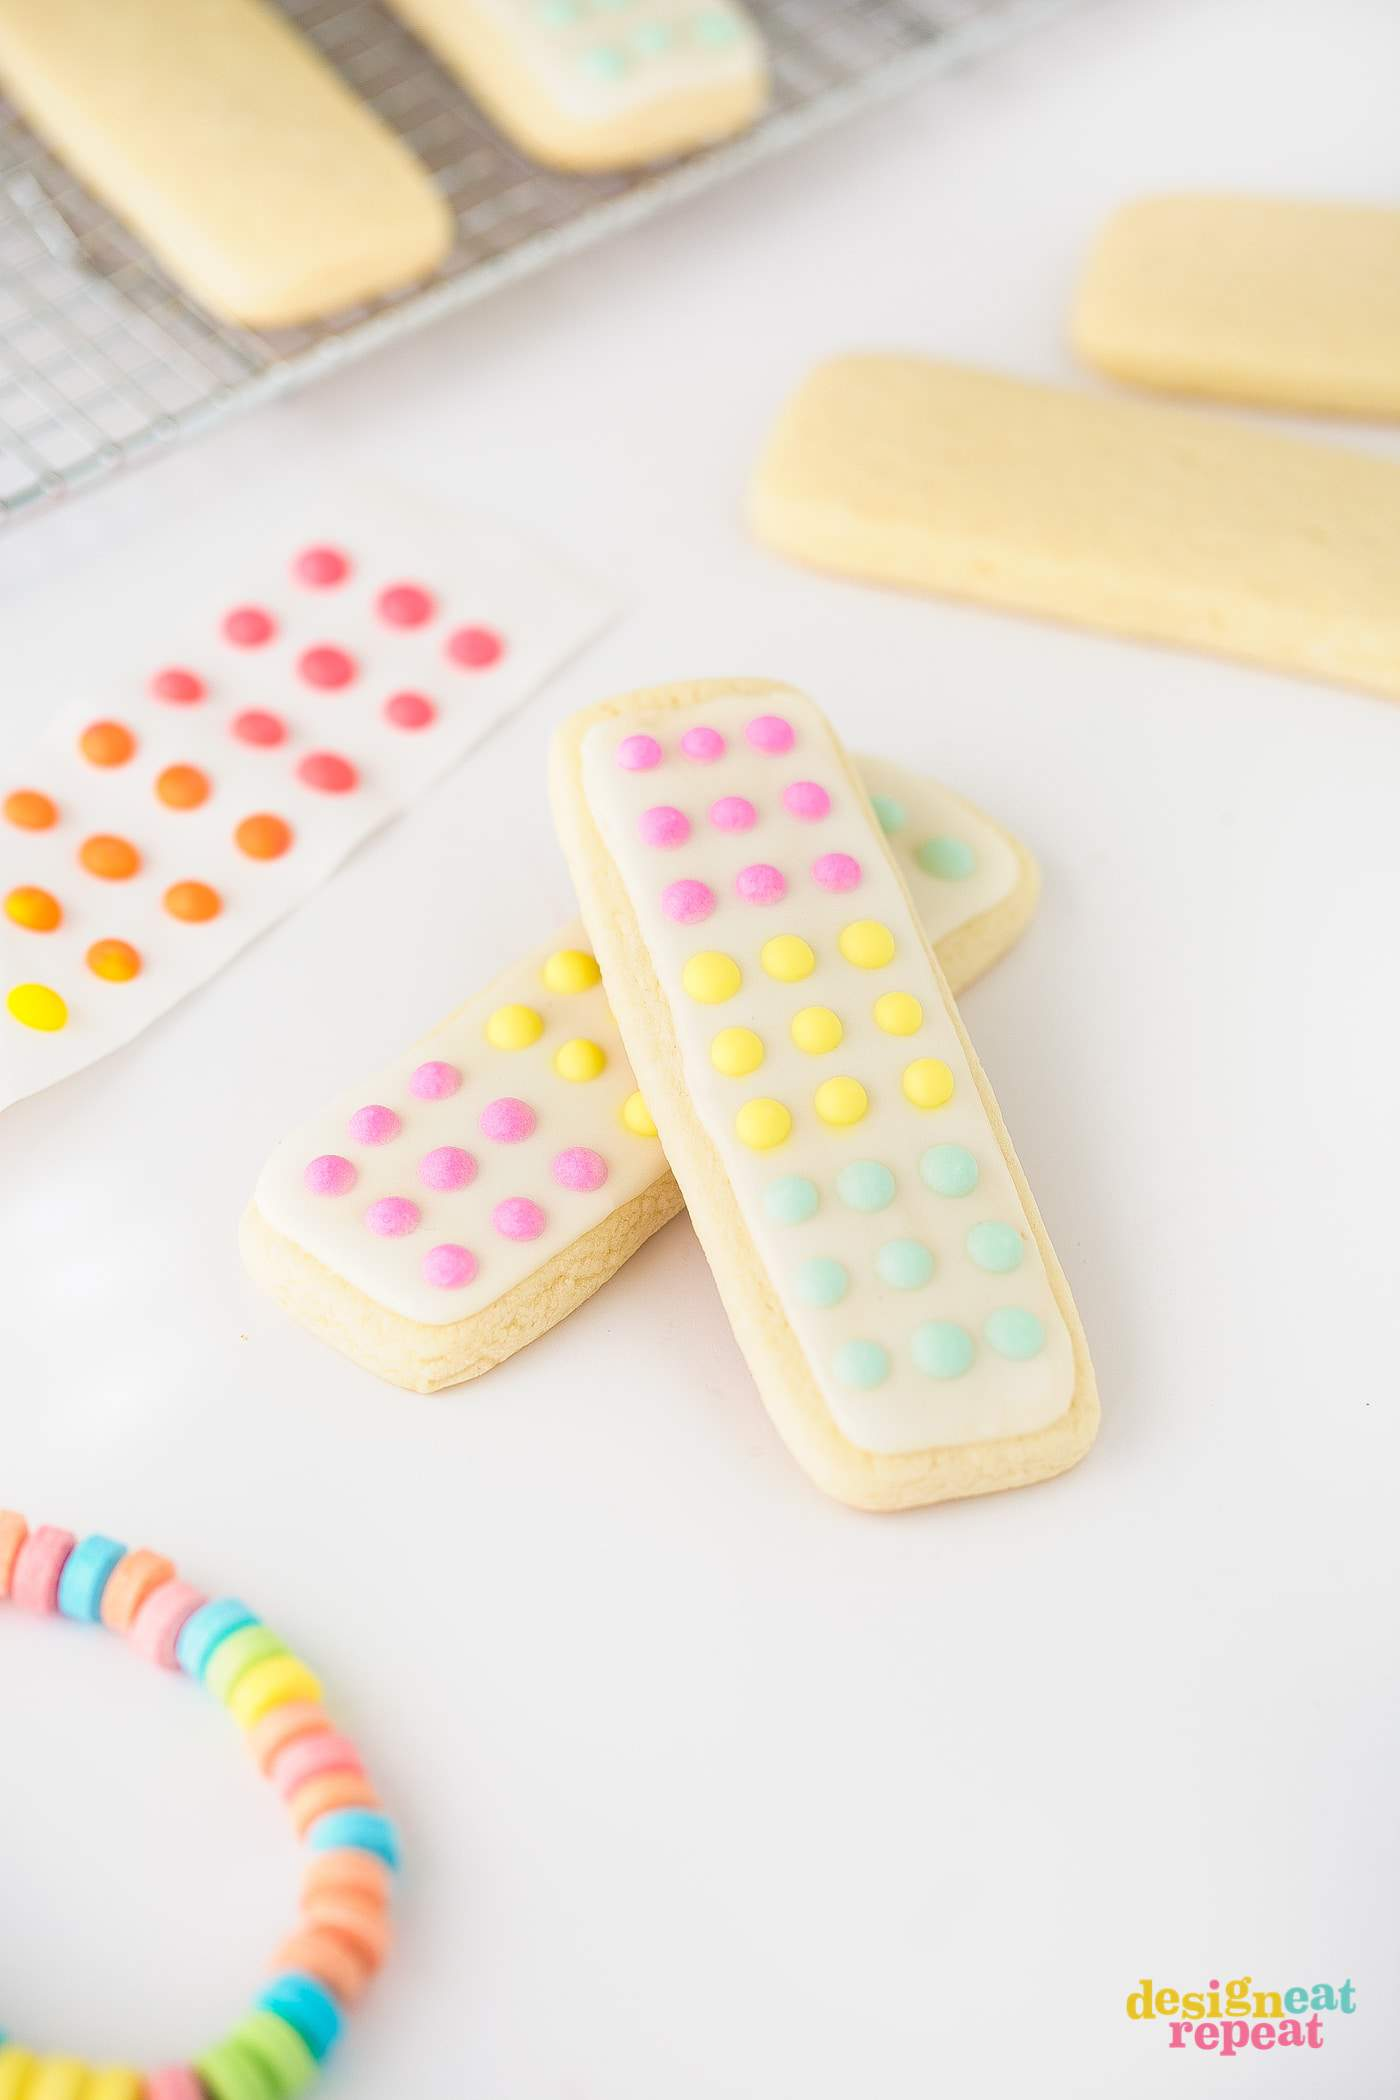 Anyone remember those vintage candy buttons?! Now you can make replicas that actually taste good by turning them into cookie form! Perfect for birthday party cookies, Halloween treats, or just an easy candy party idea!